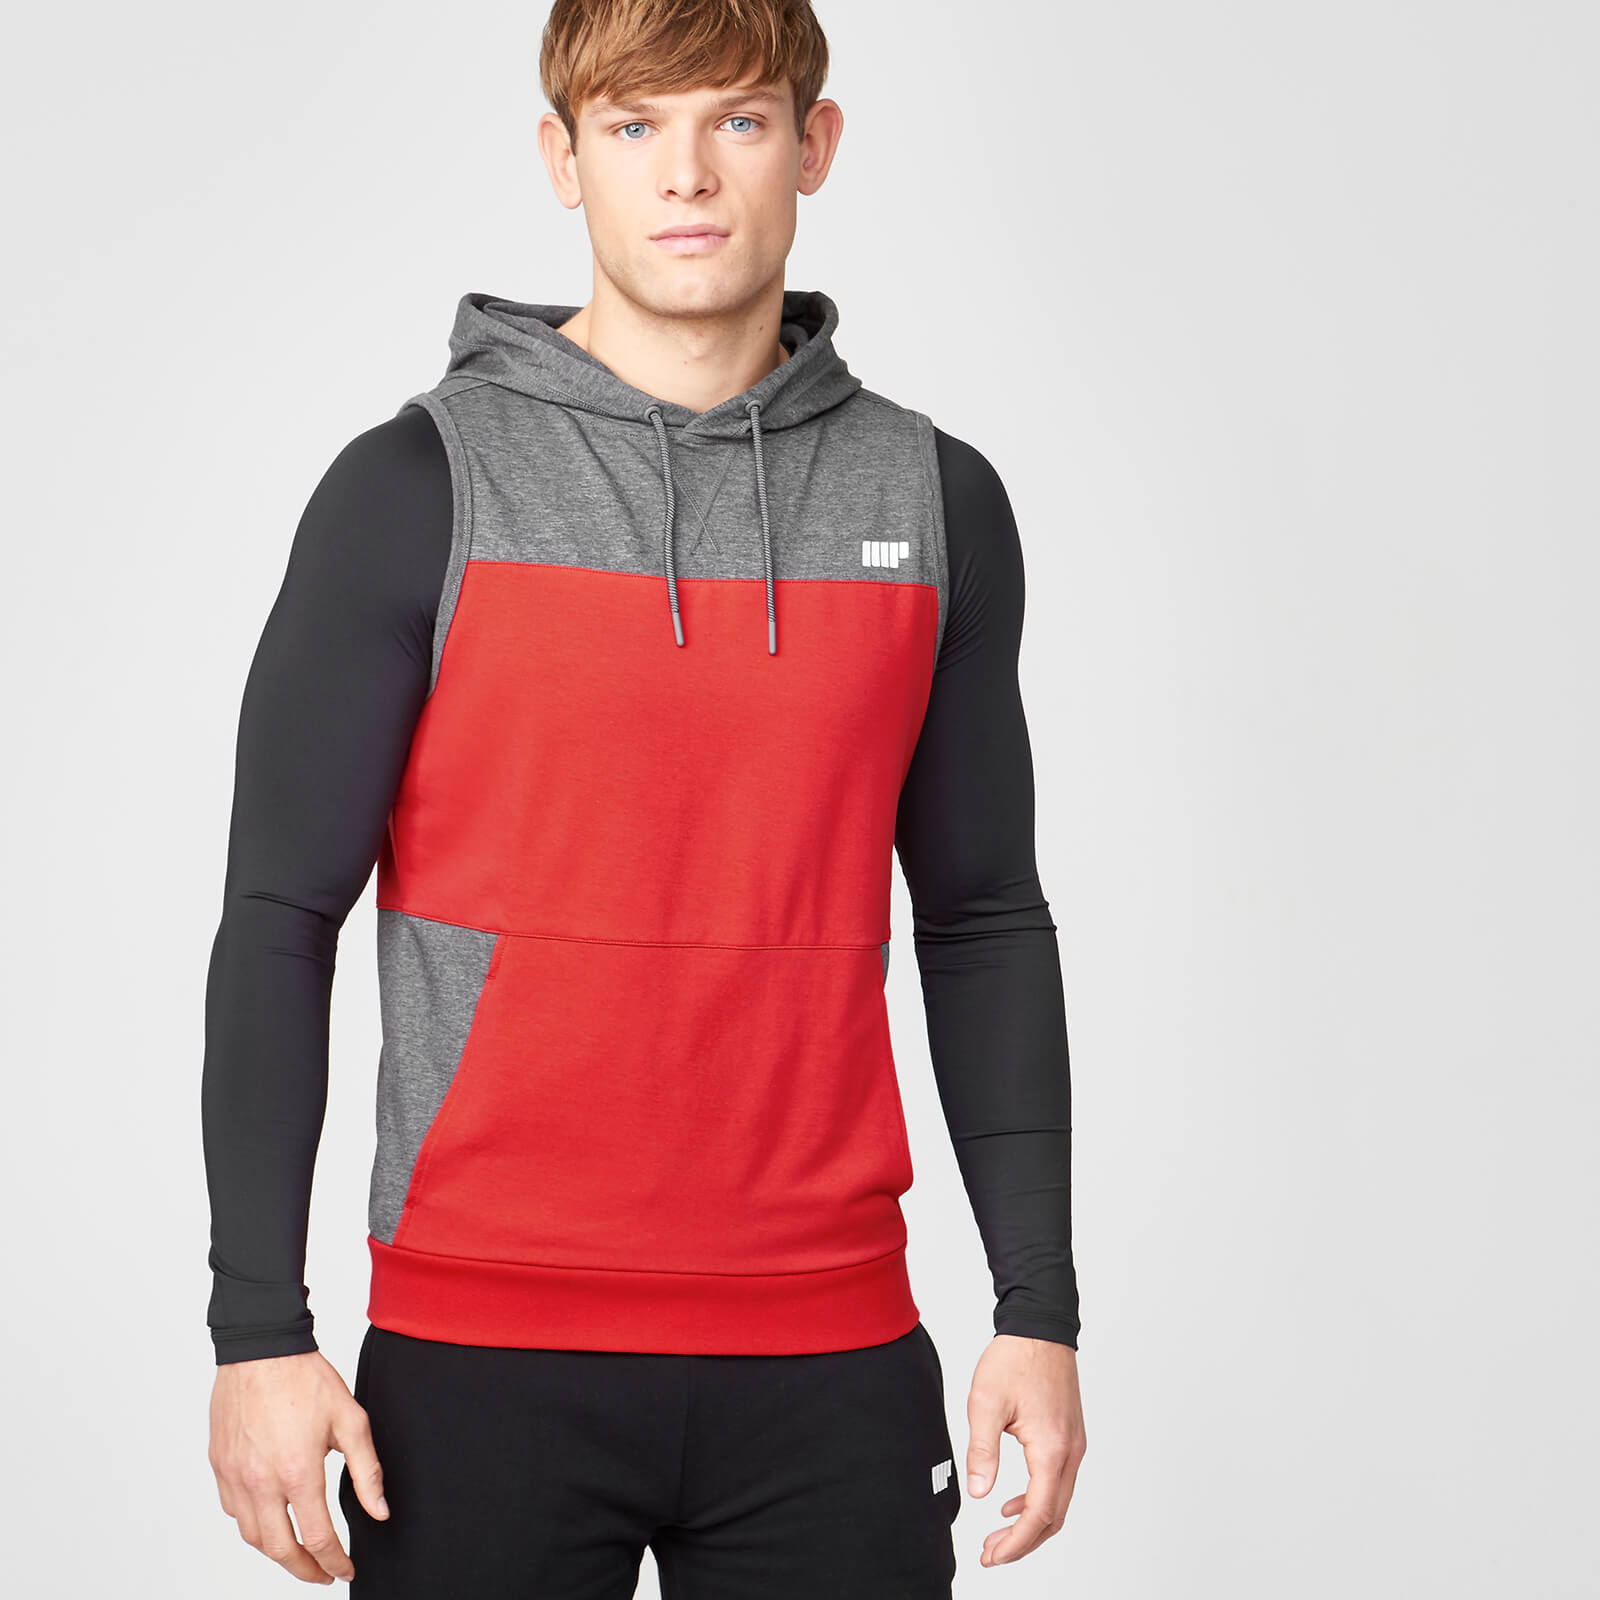 Myprotein Superlite Sleeveless Zip-Up Hoodie